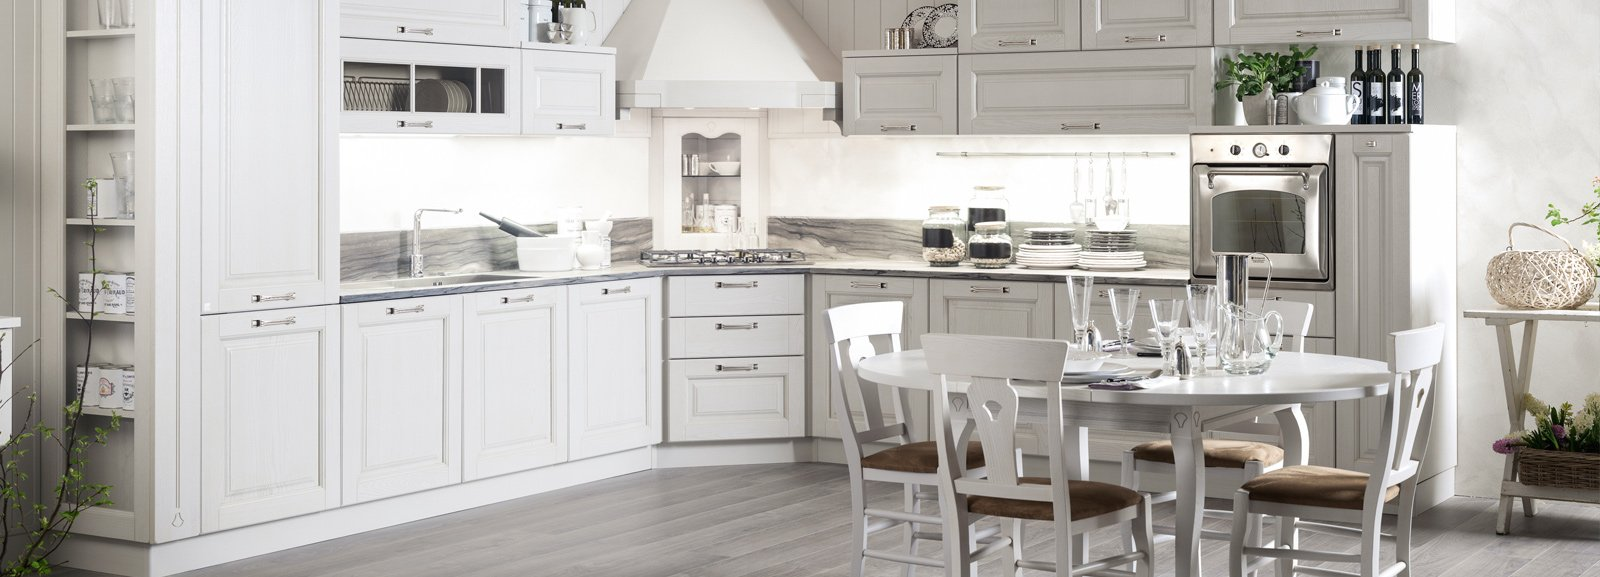 Cucina Classica Shabby Cucine Shabby Bianche Excellent Categorie Del Negozio With Cucine